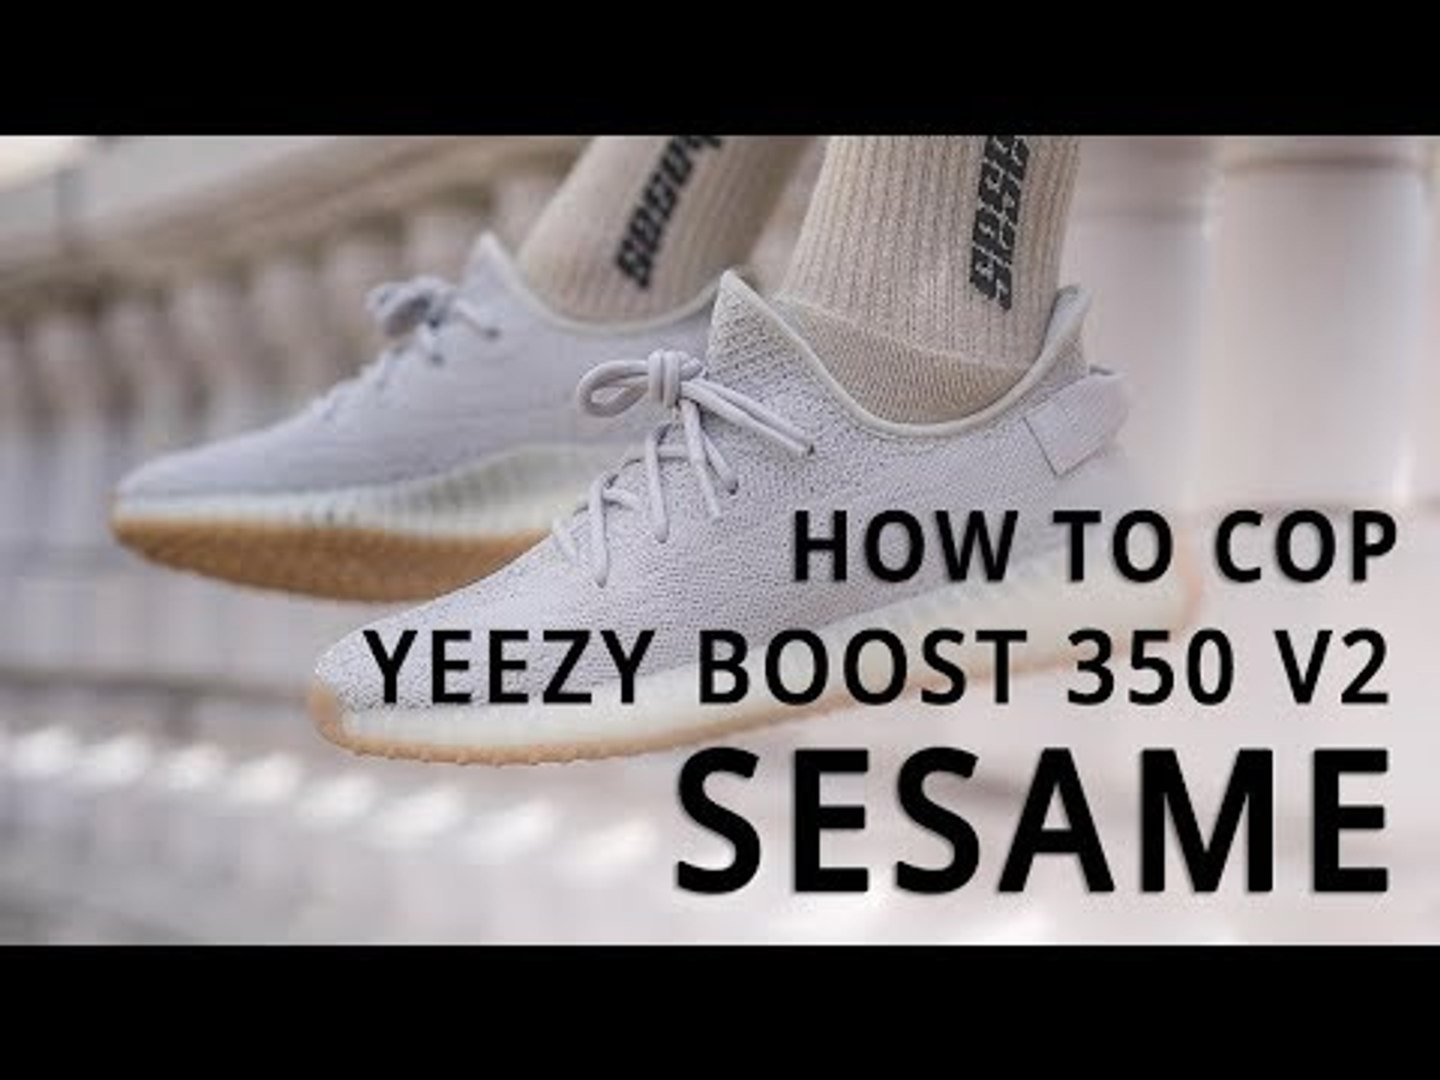 adidas YEEZY BOOST 350 V2 'Sesame' | How To Cop Guide